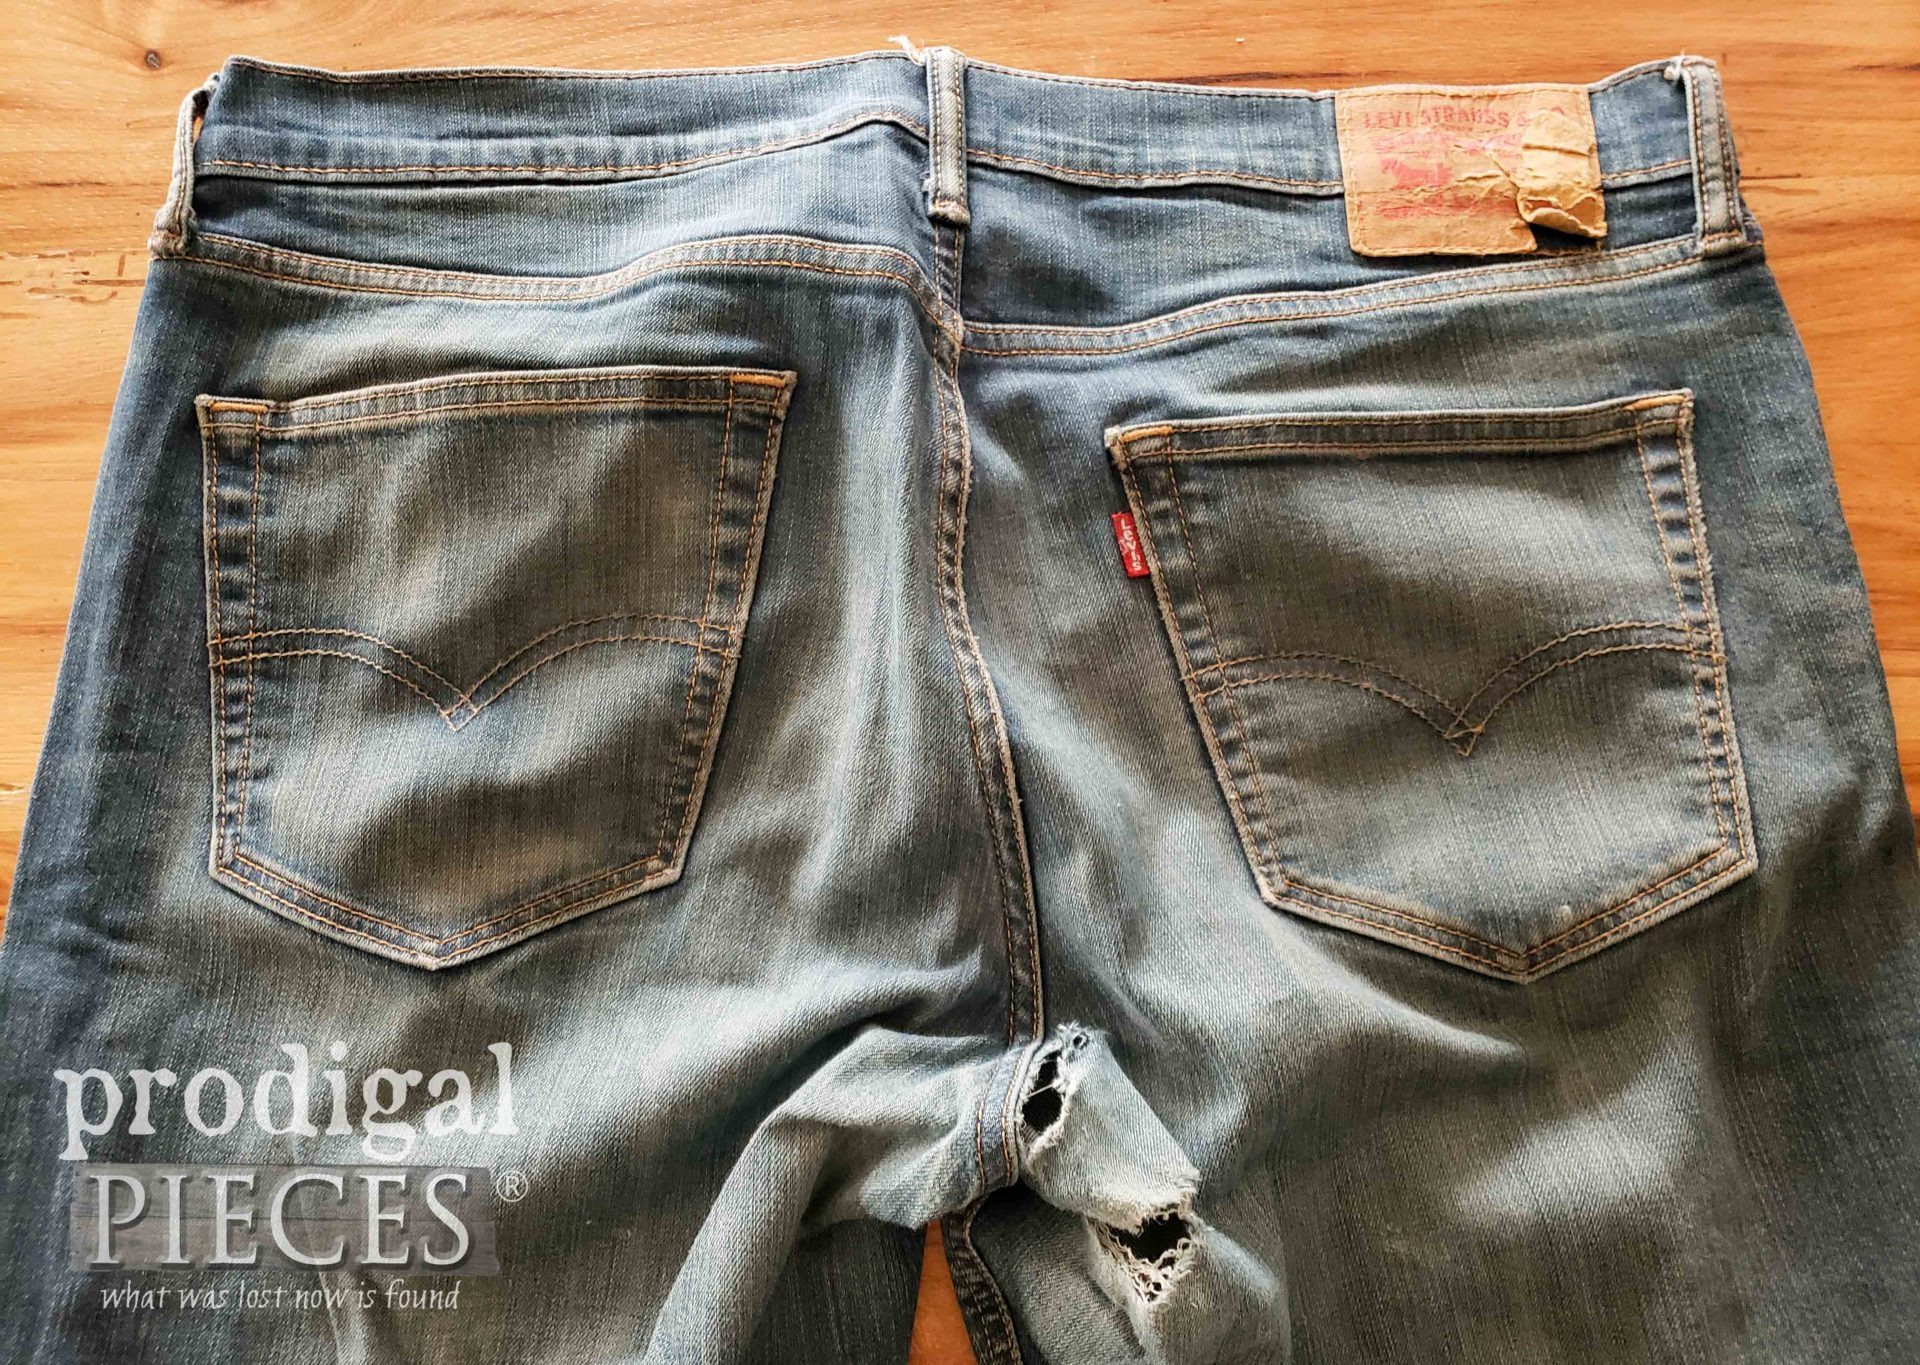 Worn Jeans Before Upcycled Denim Purse Project by Prodigal Pieces | prodigalpieces.com